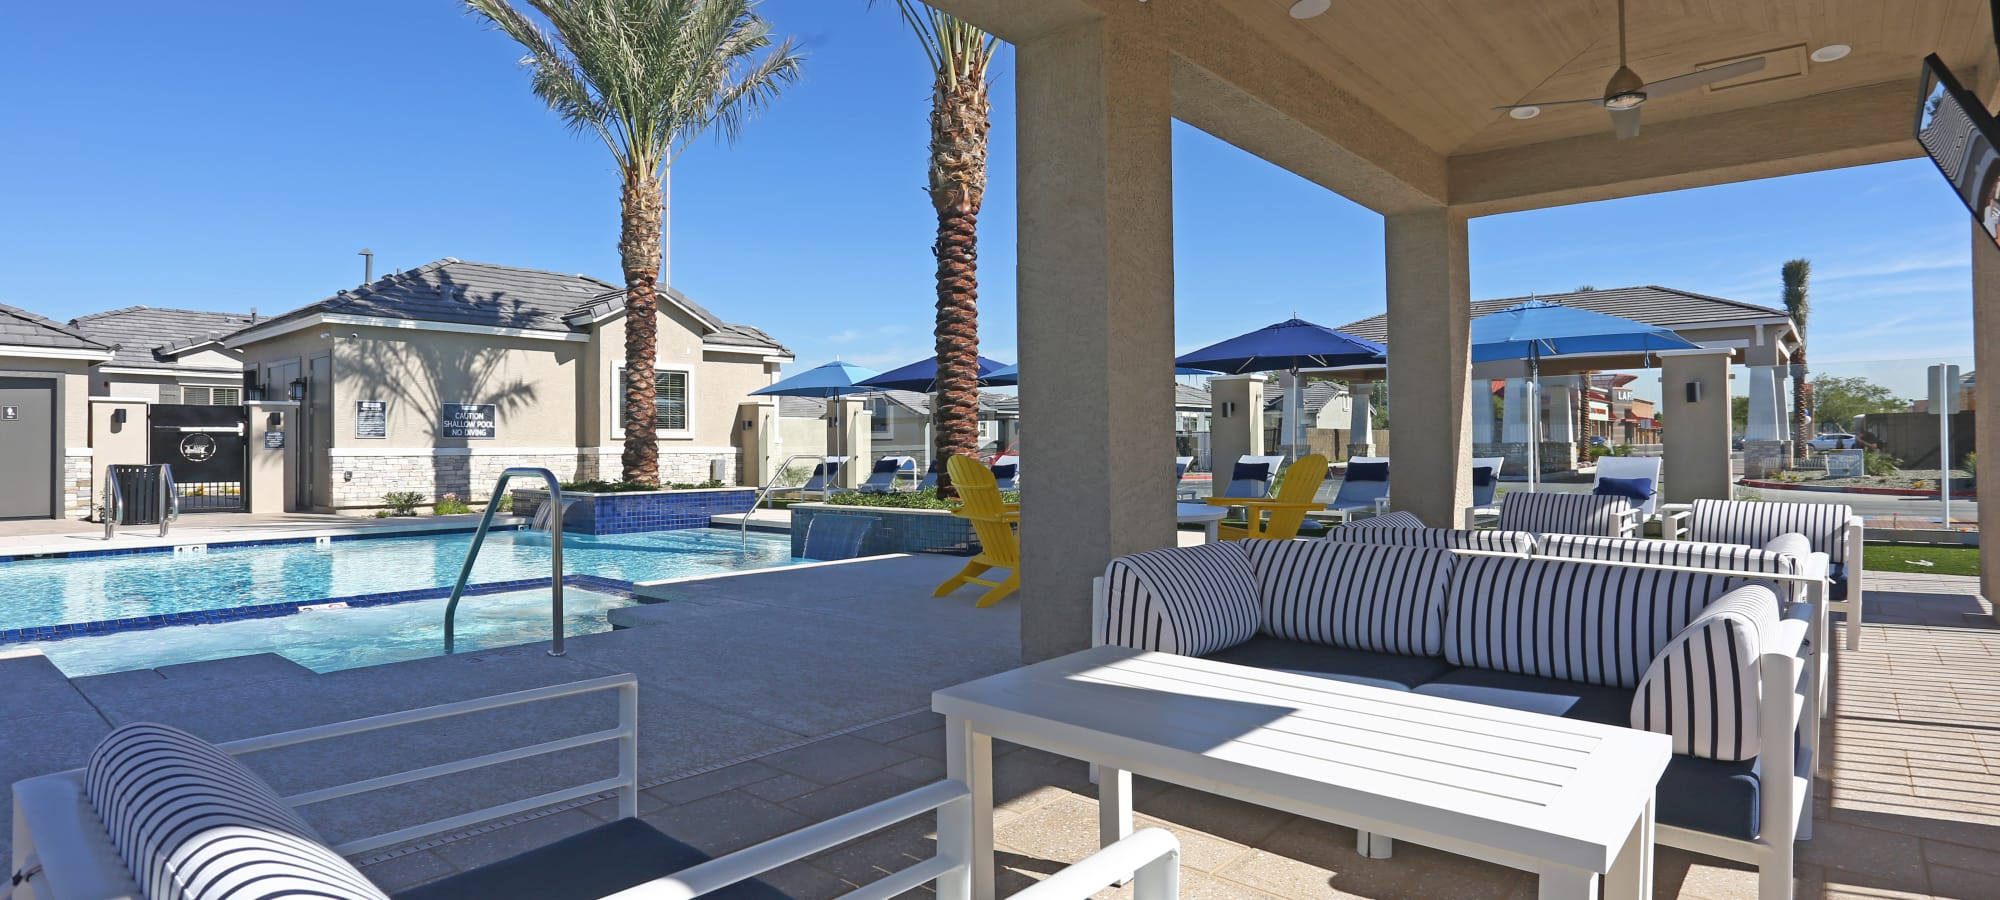 Lounge seating near the pool at Christopher Todd Communities At Marley Park in Surprise, Arizona